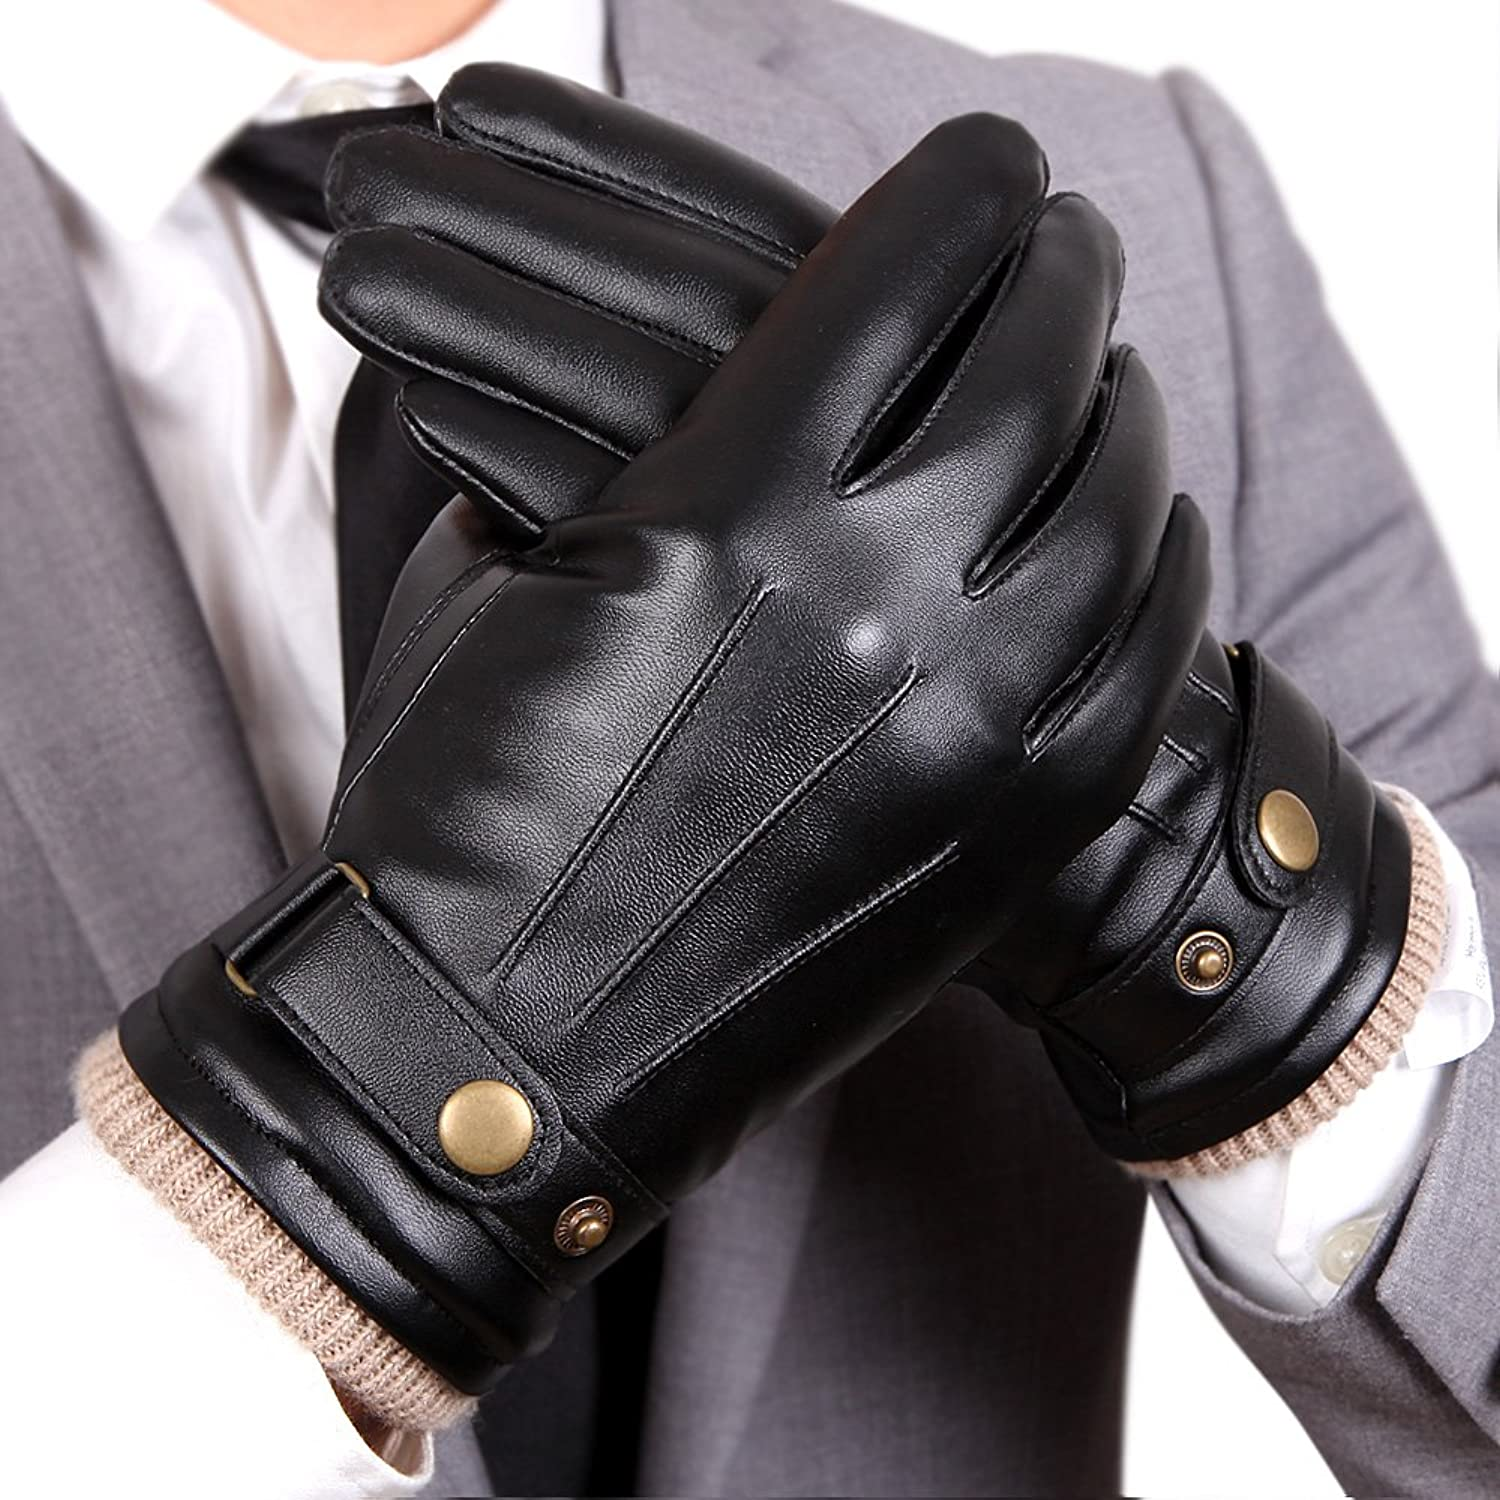 Mens gloves use iphone - Warmen Mens Touchscreen Texting Winter Pu Faux Leather Gloves Driving Long Fleece Lining Black Wool